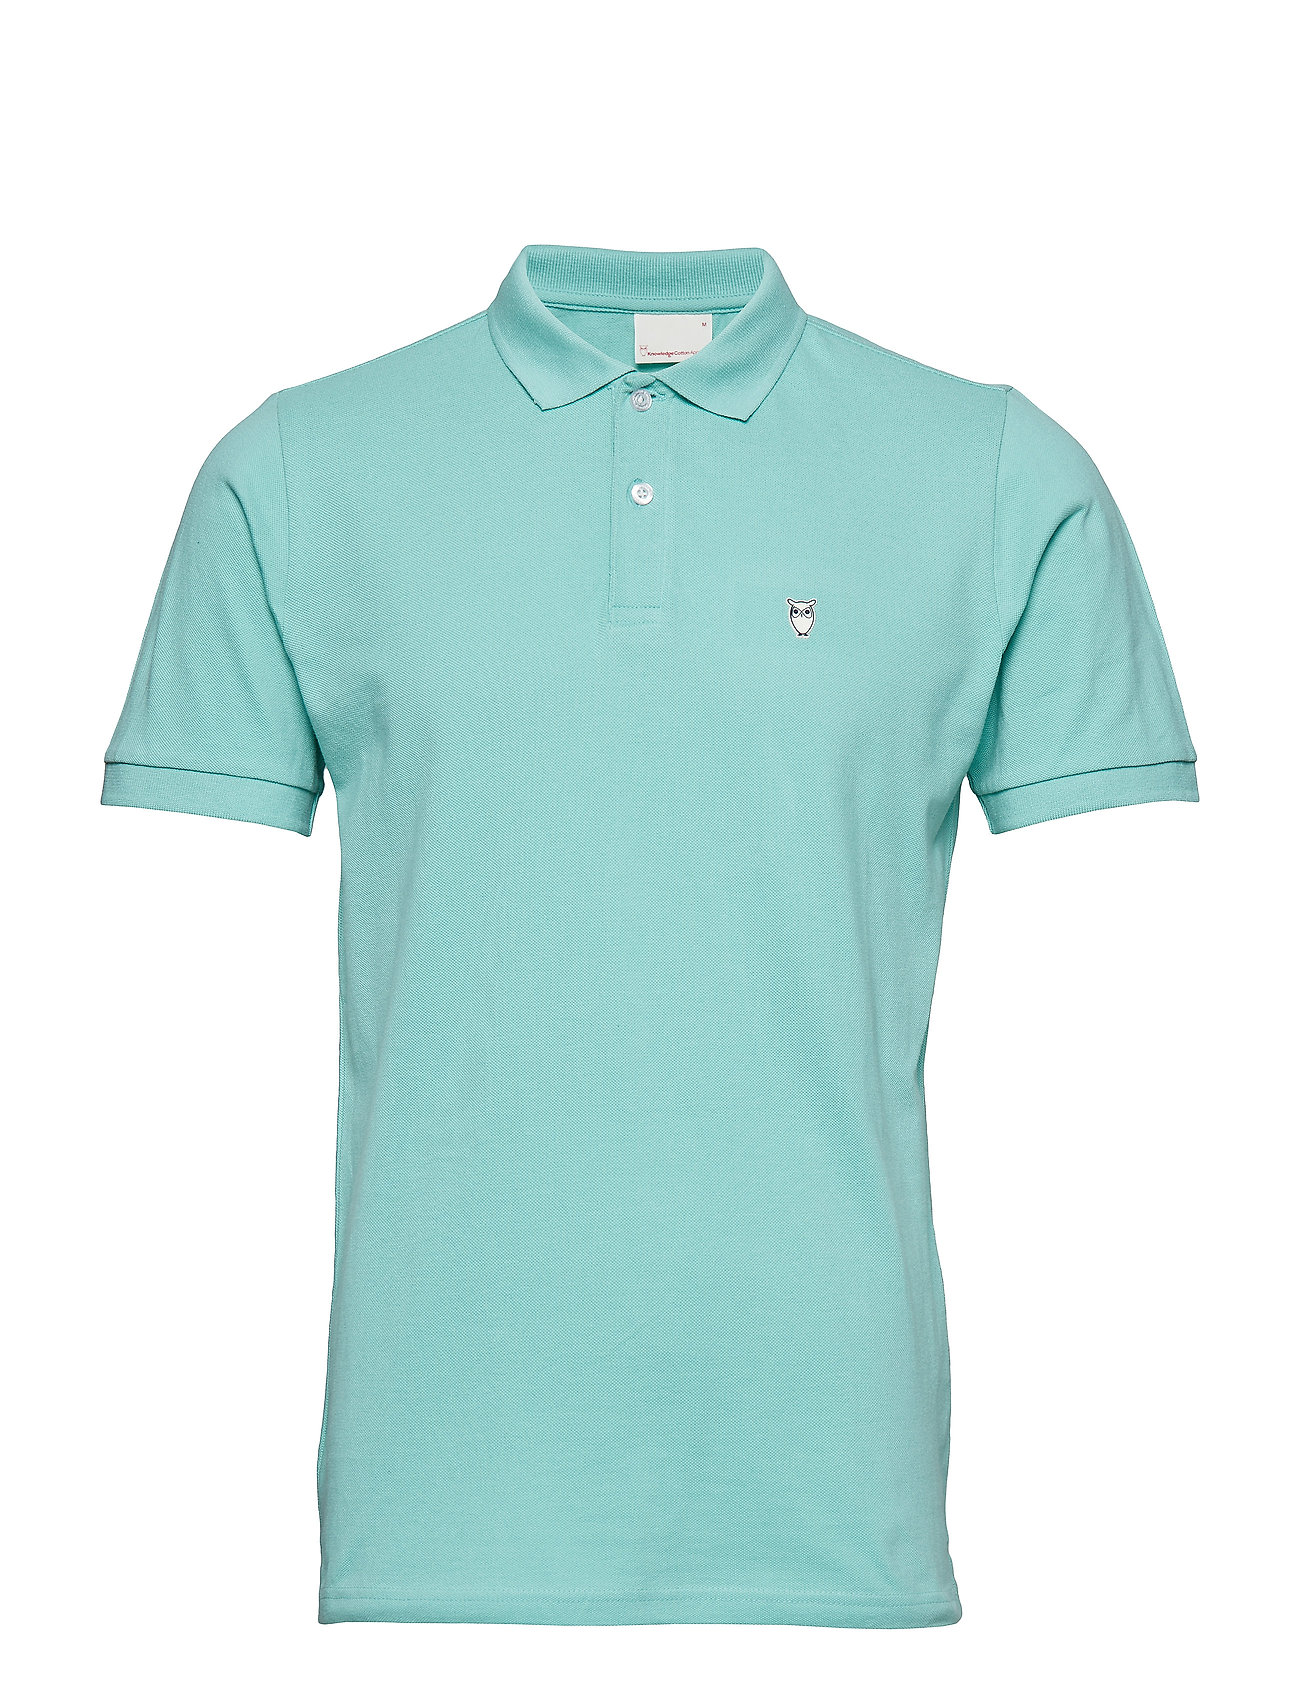 Knowledge Cotton Apparel Pique Polo -  GOTS/Vegan - DUSTY JADE GREEN